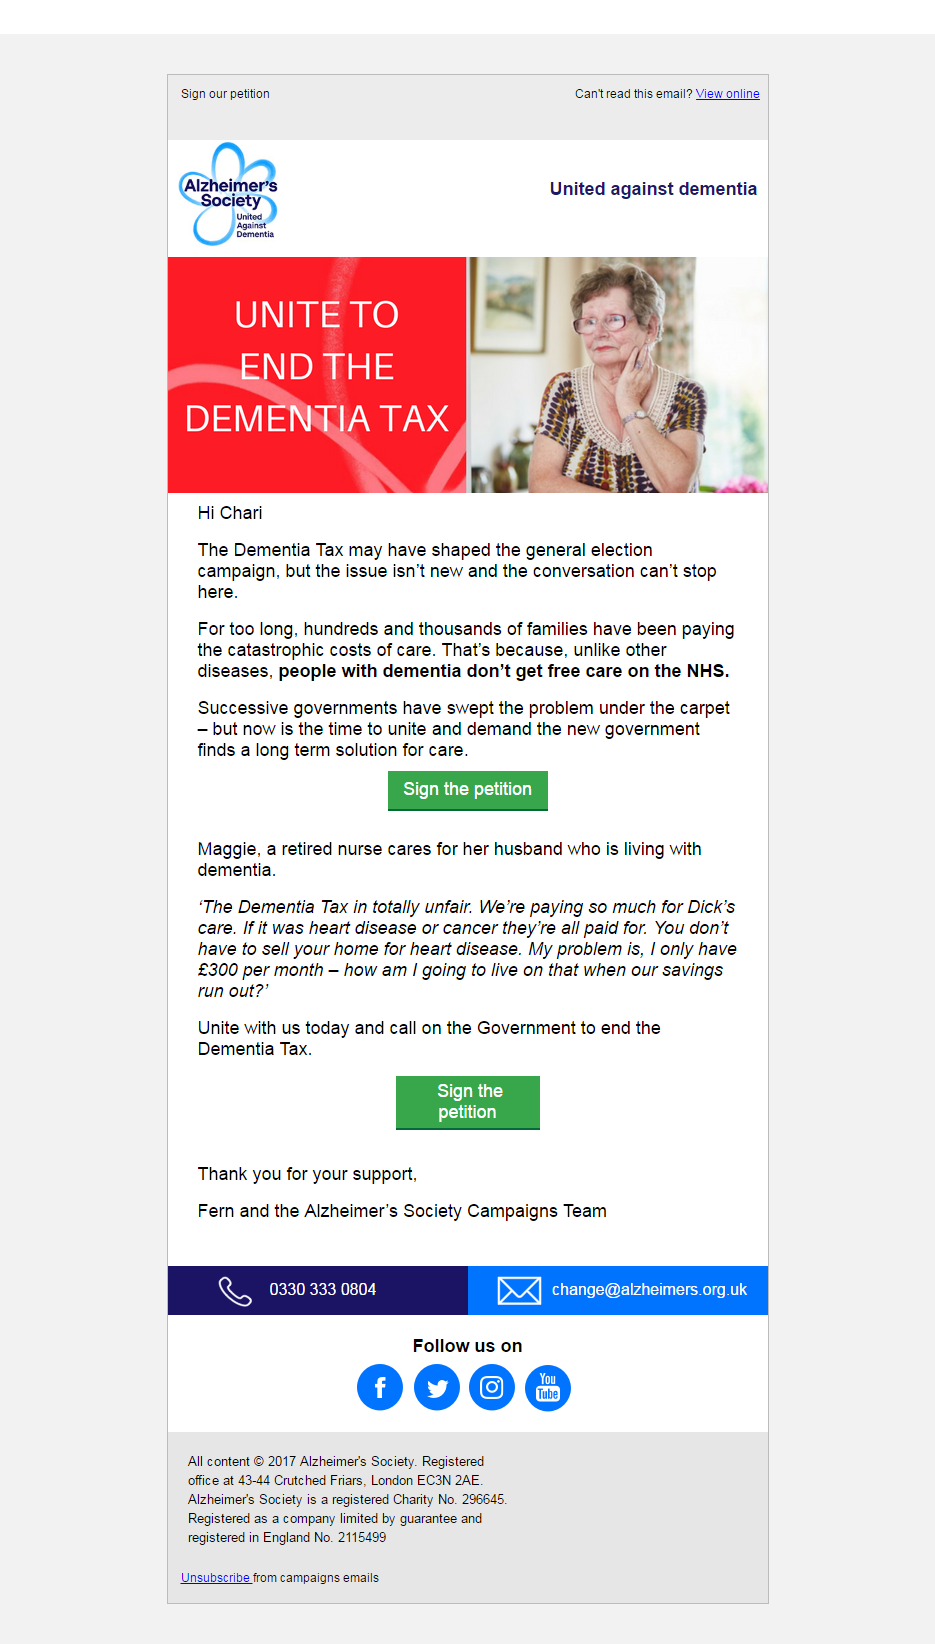 AlzheimerS Society Sign The Petition To End The Dementia Tax